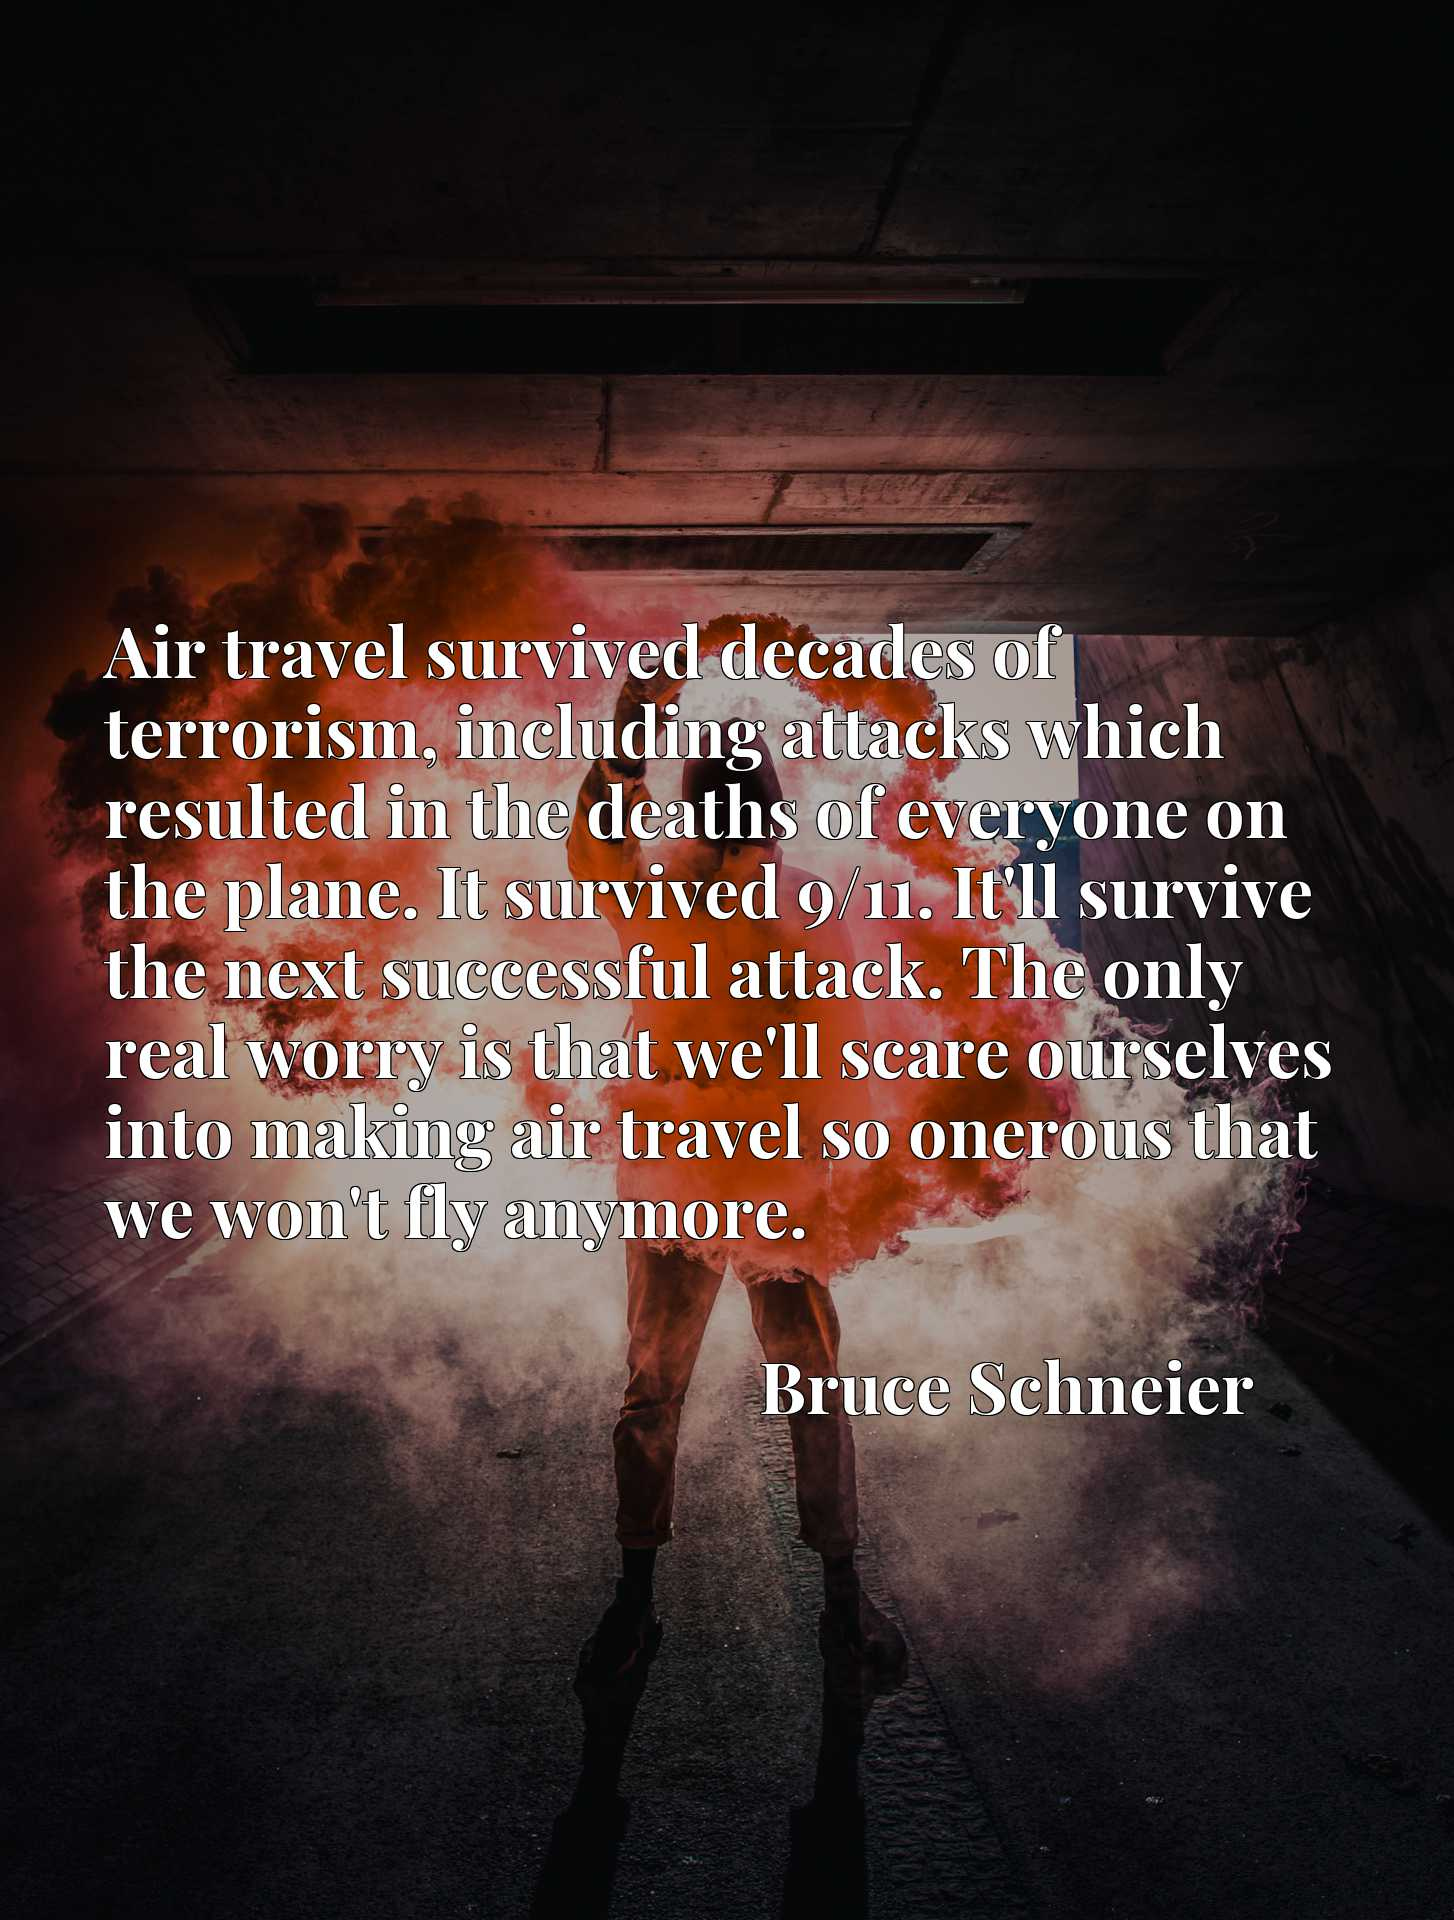 Air travel survived decades of terrorism, including attacks which resulted in the deaths of everyone on the plane. It survived 9/11. It'll survive the next successful attack. The only real worry is that we'll scare ourselves into making air travel so onerous that we won't fly anymore.